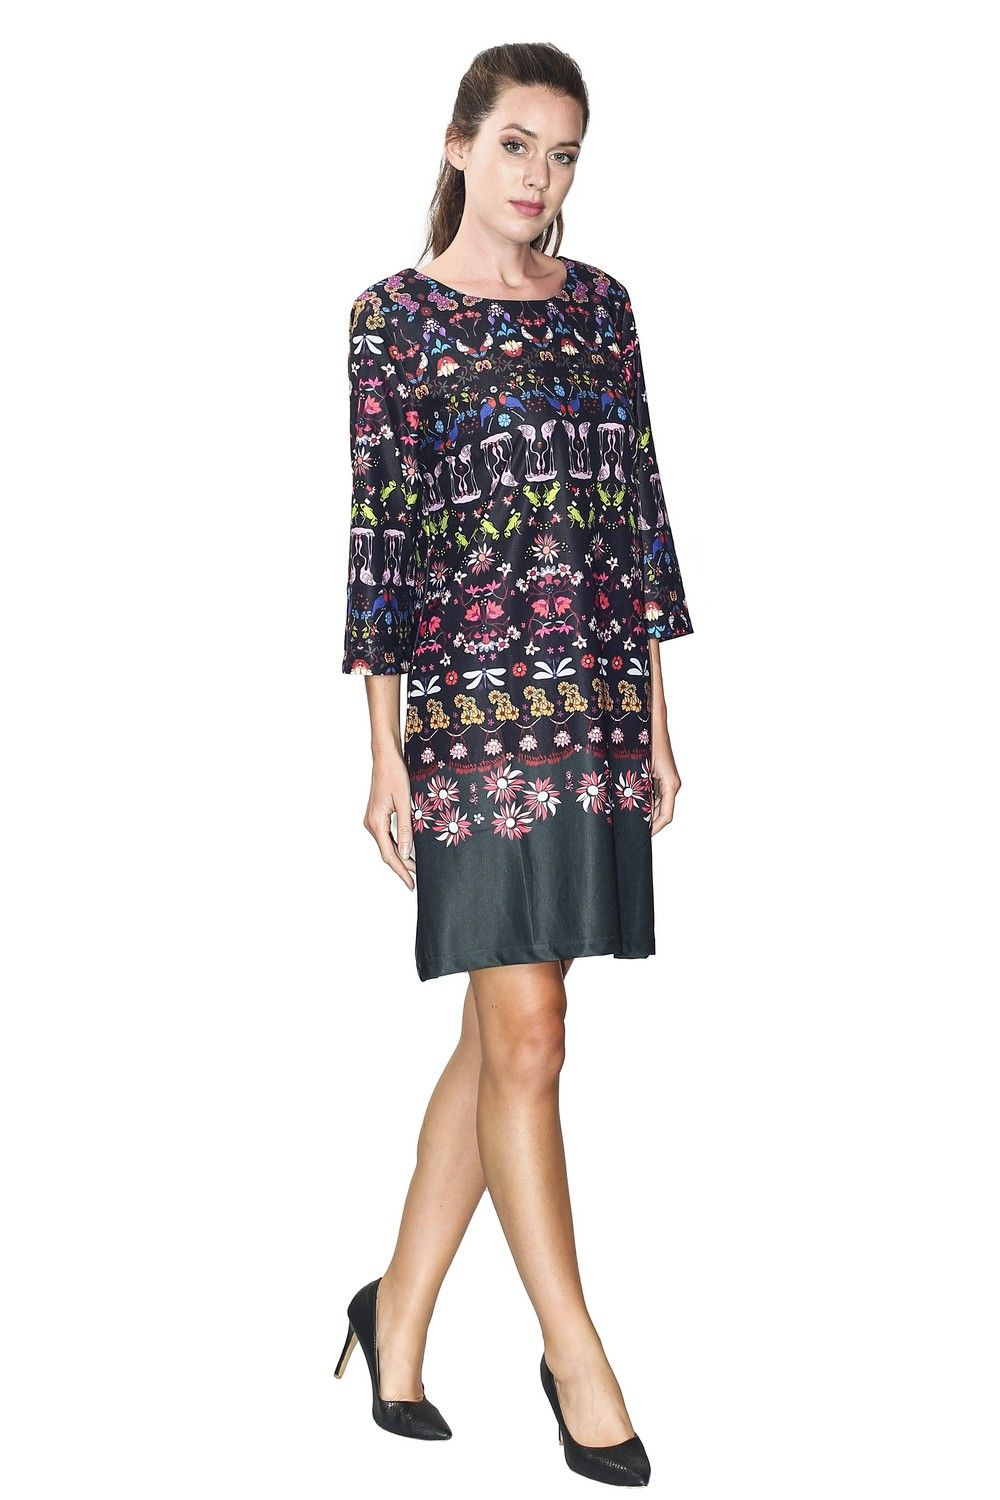 Assuili Boat Neck 3/4 Sleeve Printed Dress  in Black